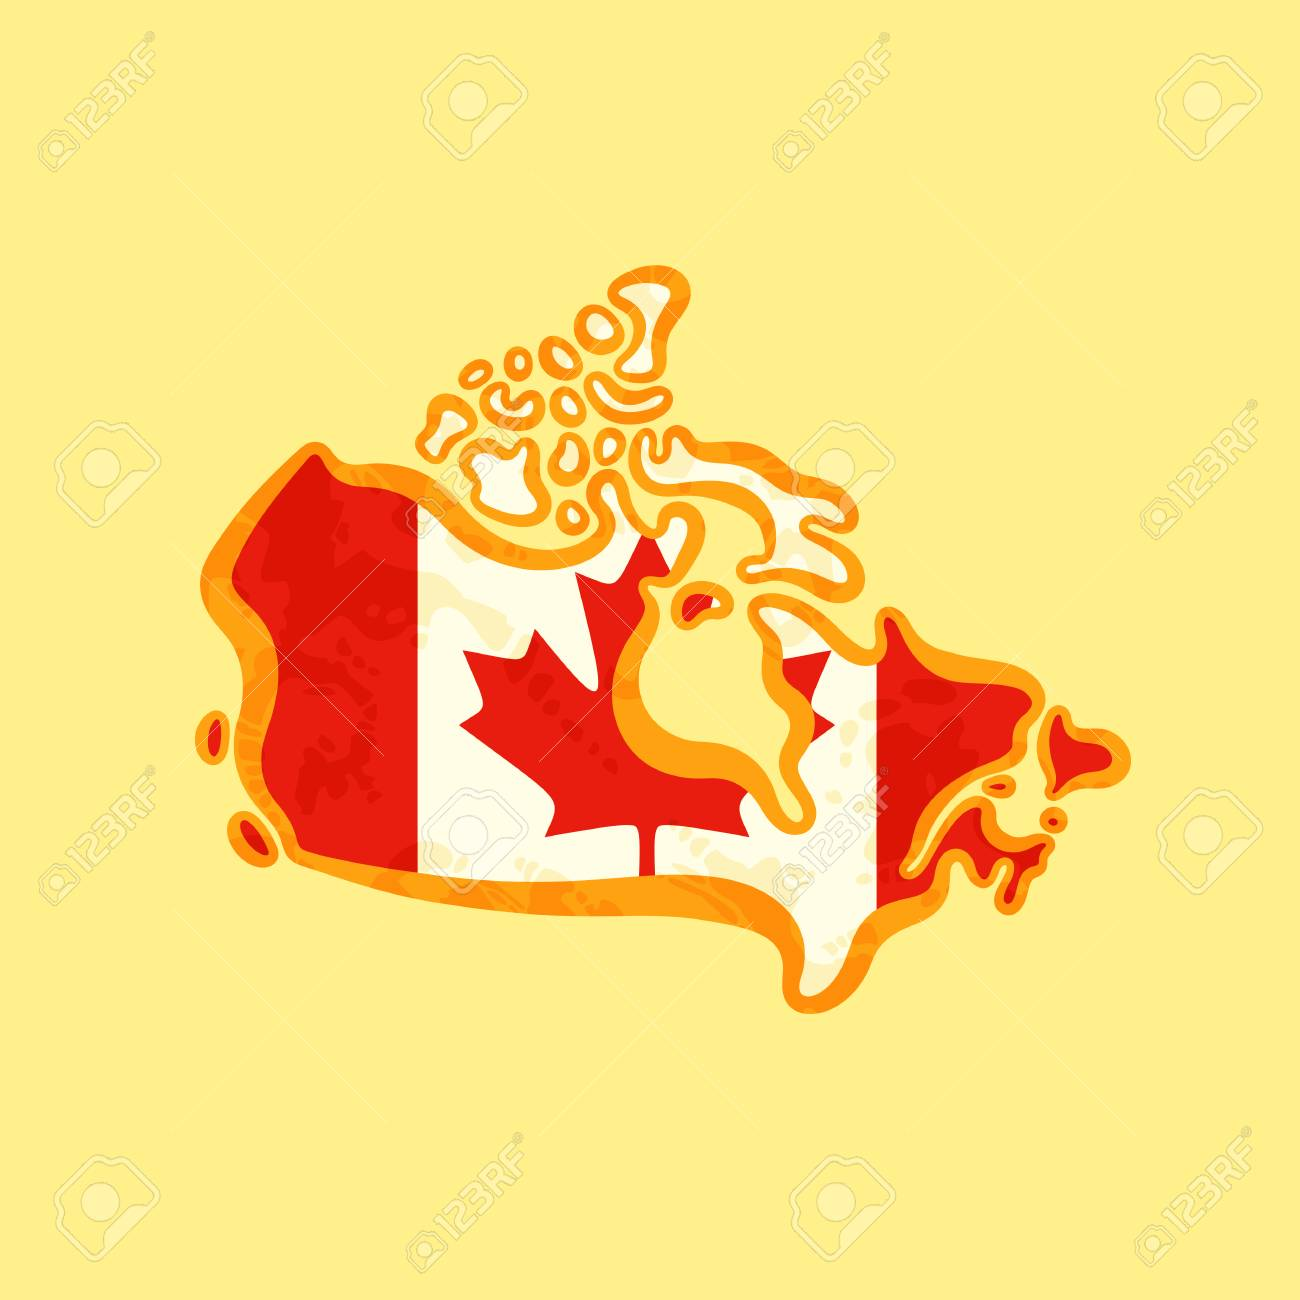 Colored Map Of Canada.Map Of Canada Colored With Canadian Flag And Marked With Golden